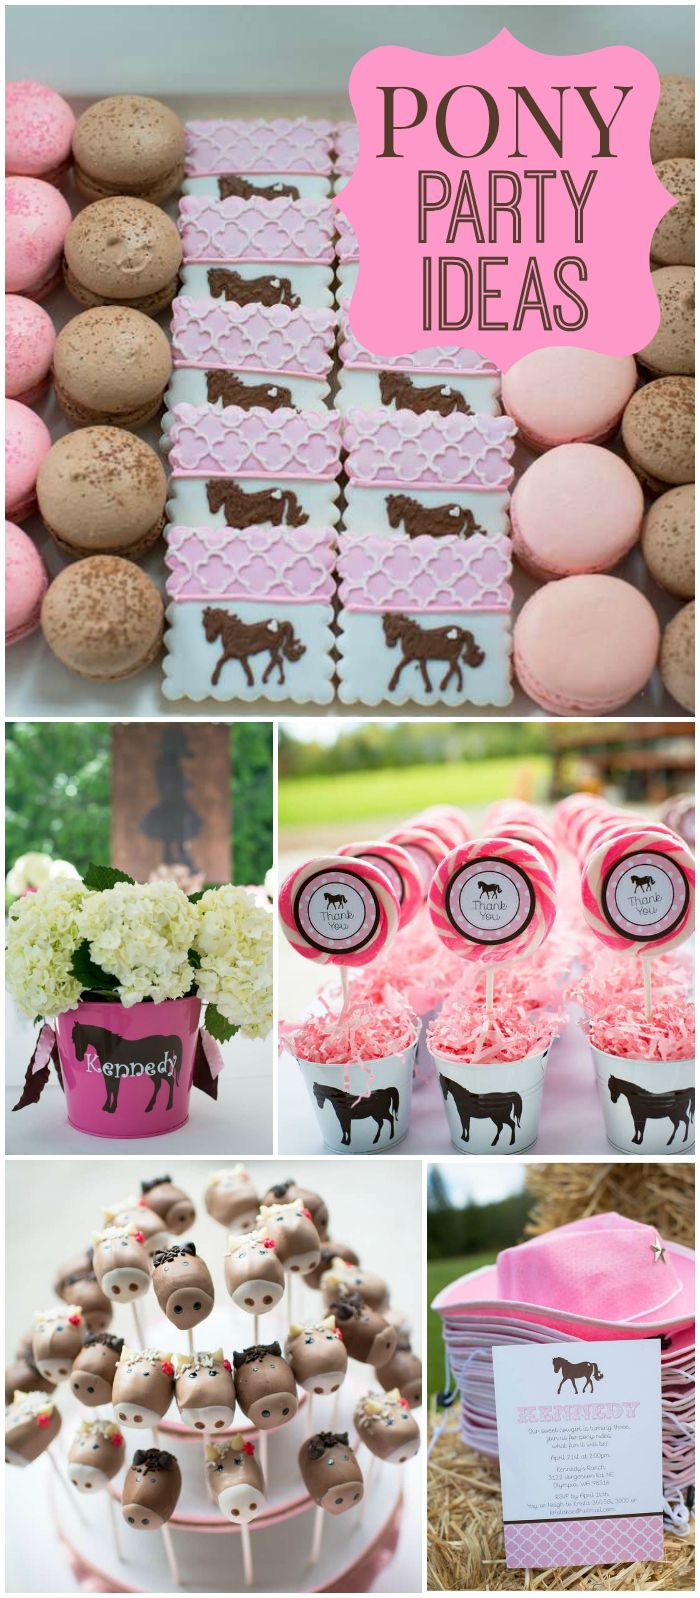 Here's a pony themed party with a pink cake and adorable cake pops! See more party ideas at CatchMyParty.com!